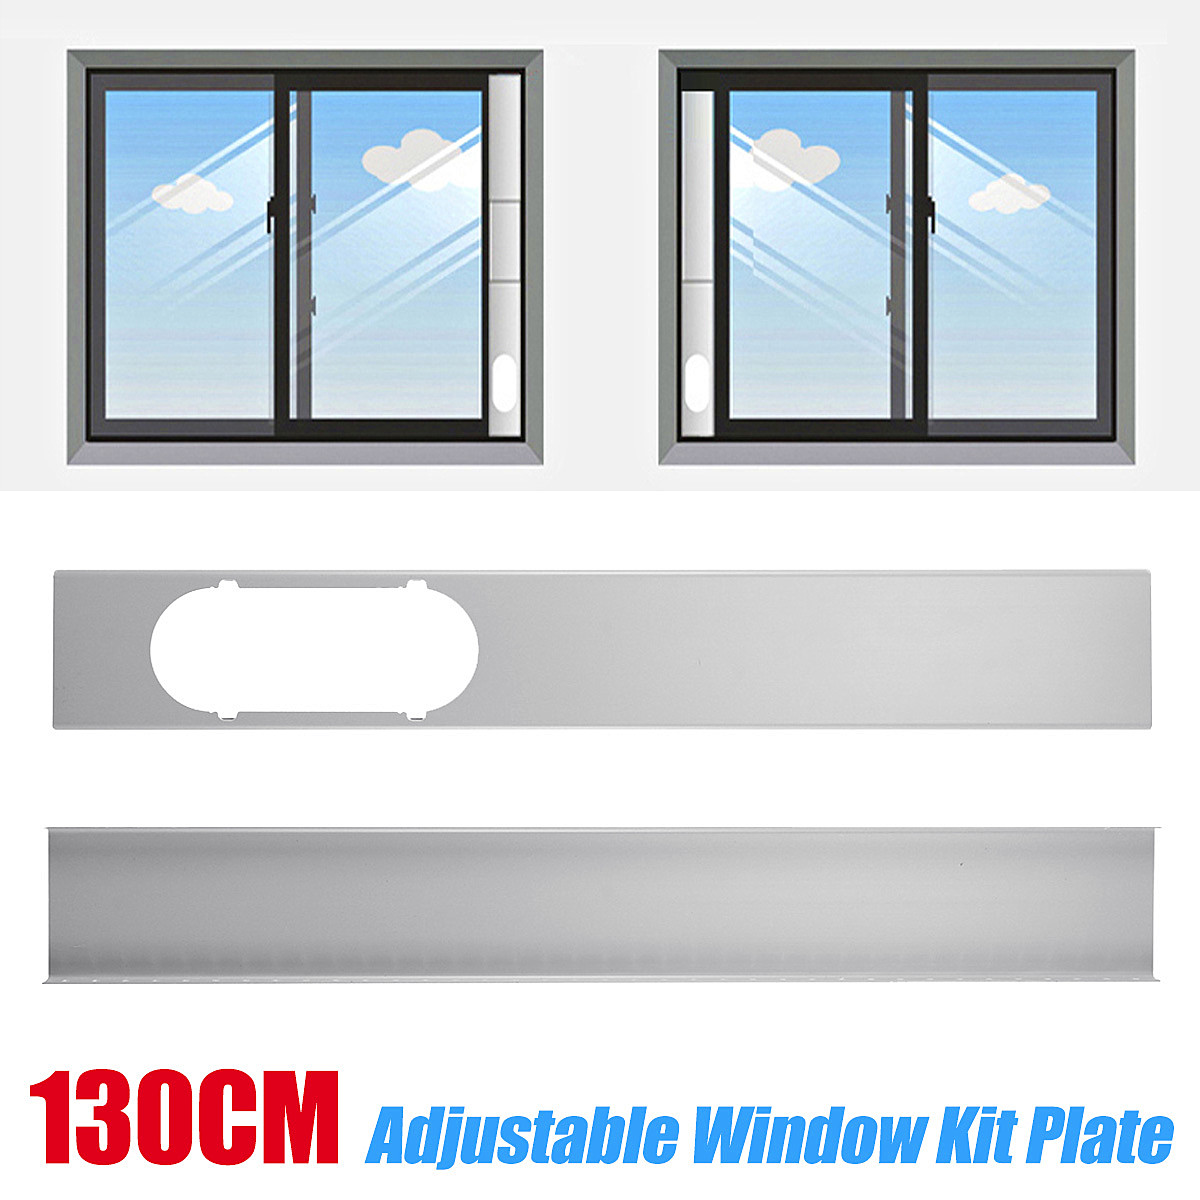 2x Adjustable Window Slide Kit Plate Spare Parts For Portable Air Conditioner2x Adjustable Window Slide Kit Plate Spare Parts For Portable Air Conditioner